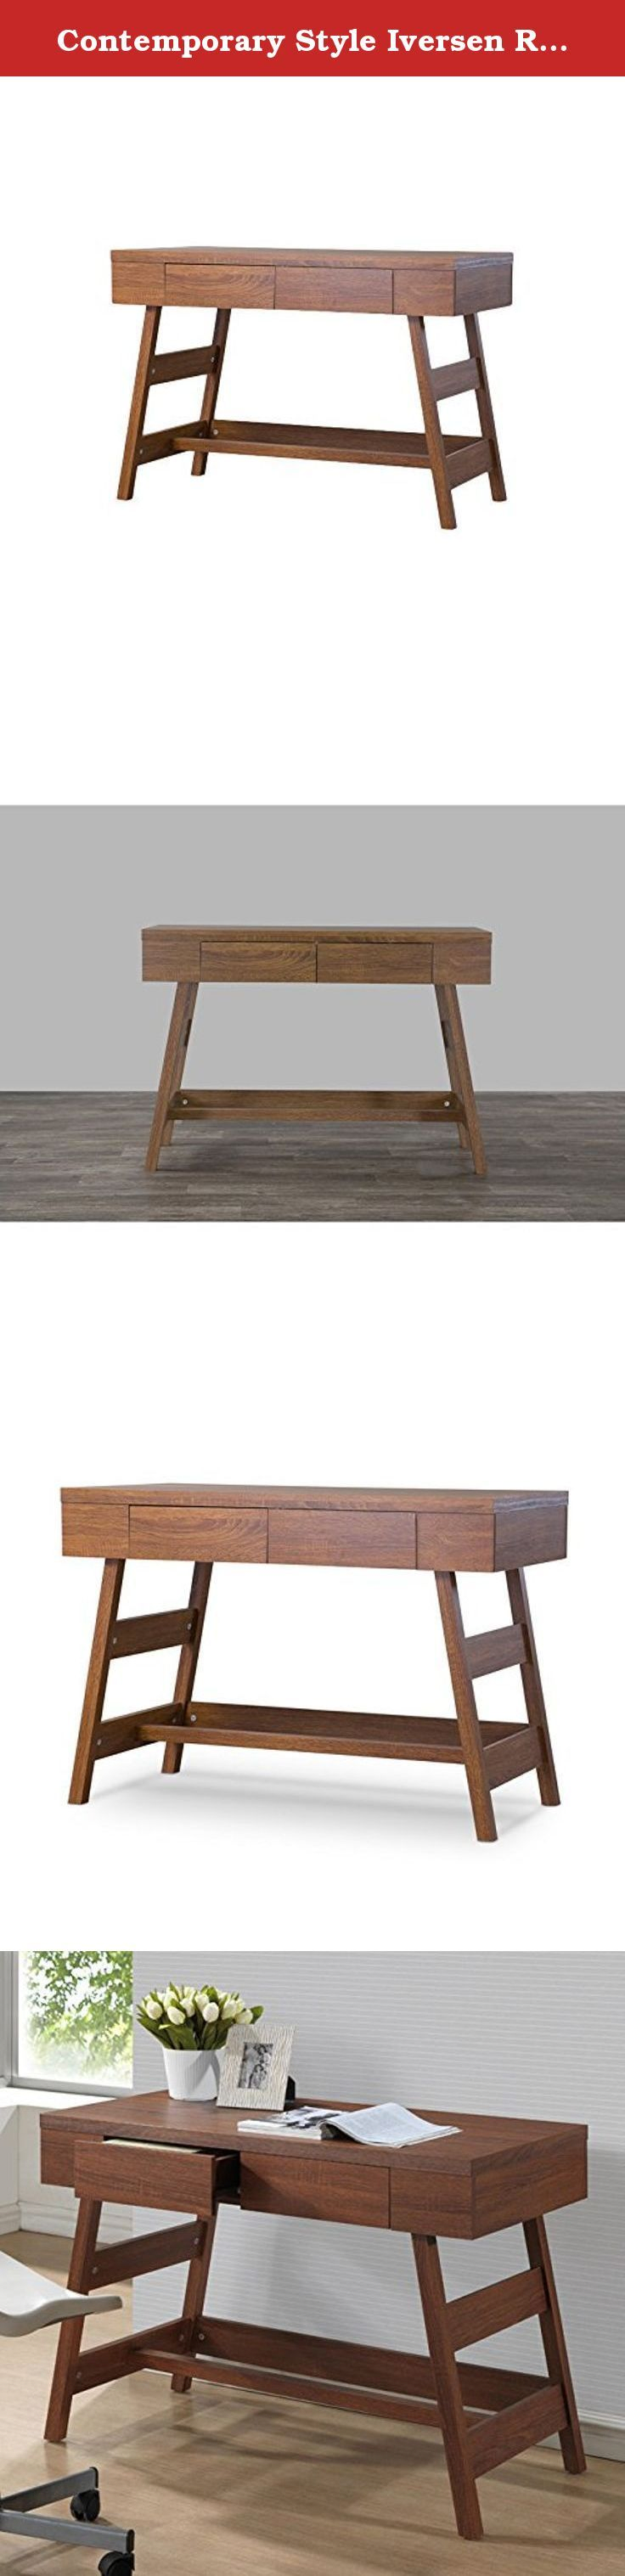 Contemporary Style Iversen Rectangular Writing Desk with 2 Large Drawers Made w/ Engineered Wood in Dark Brown Finish 30.25'' H x 43.2'' W x 21.75'' D in. Stylist's Tip: This stylish writing desk makes the perfect foundation for an inviting (and productive) workspace. Top it with a petite terrarium or potted succulent to liven up the space, then add a few mason jars or a carved wood organizer to corral all your essentials in style.